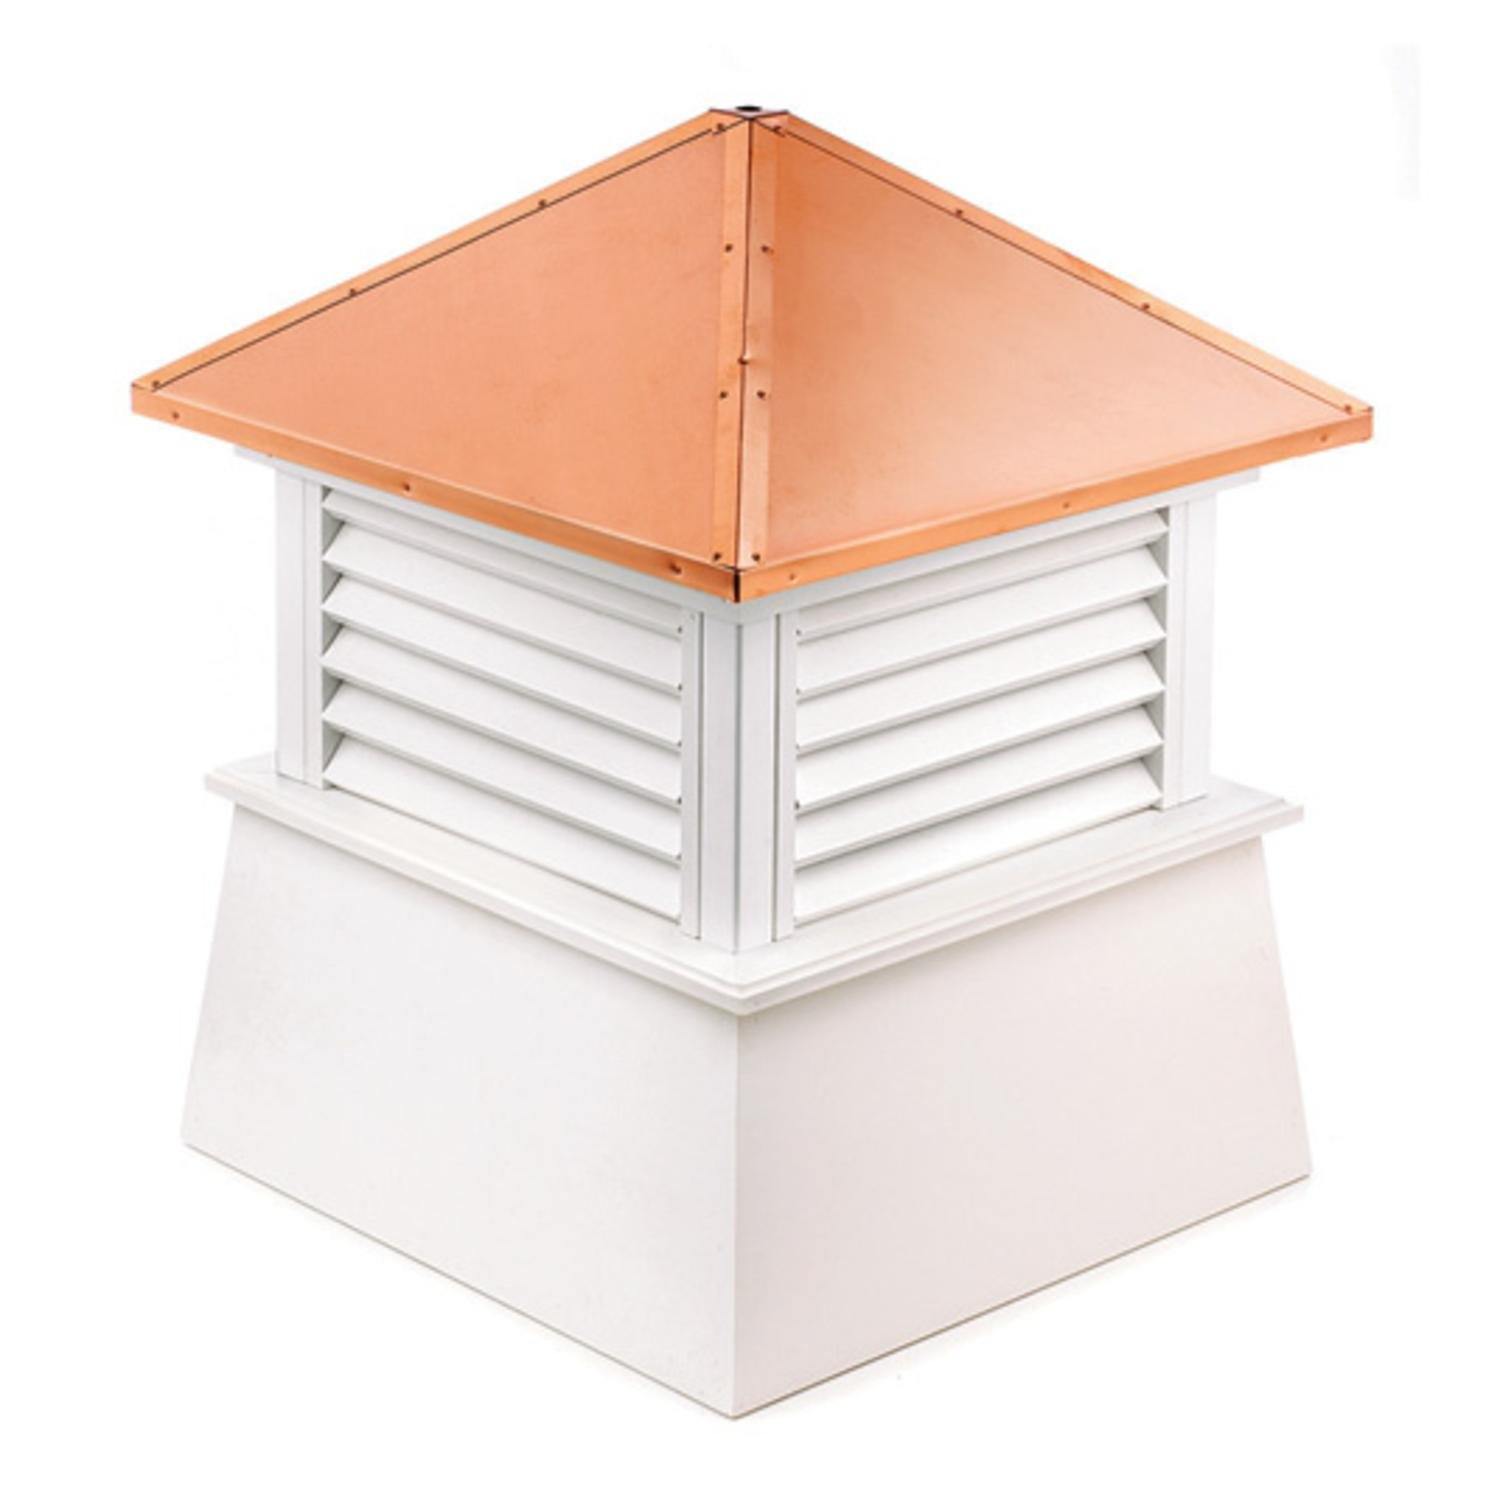 32'' Handcrafted ''Manchester'' Copper Roof Vinyl Cupola by CC Home Furnishings